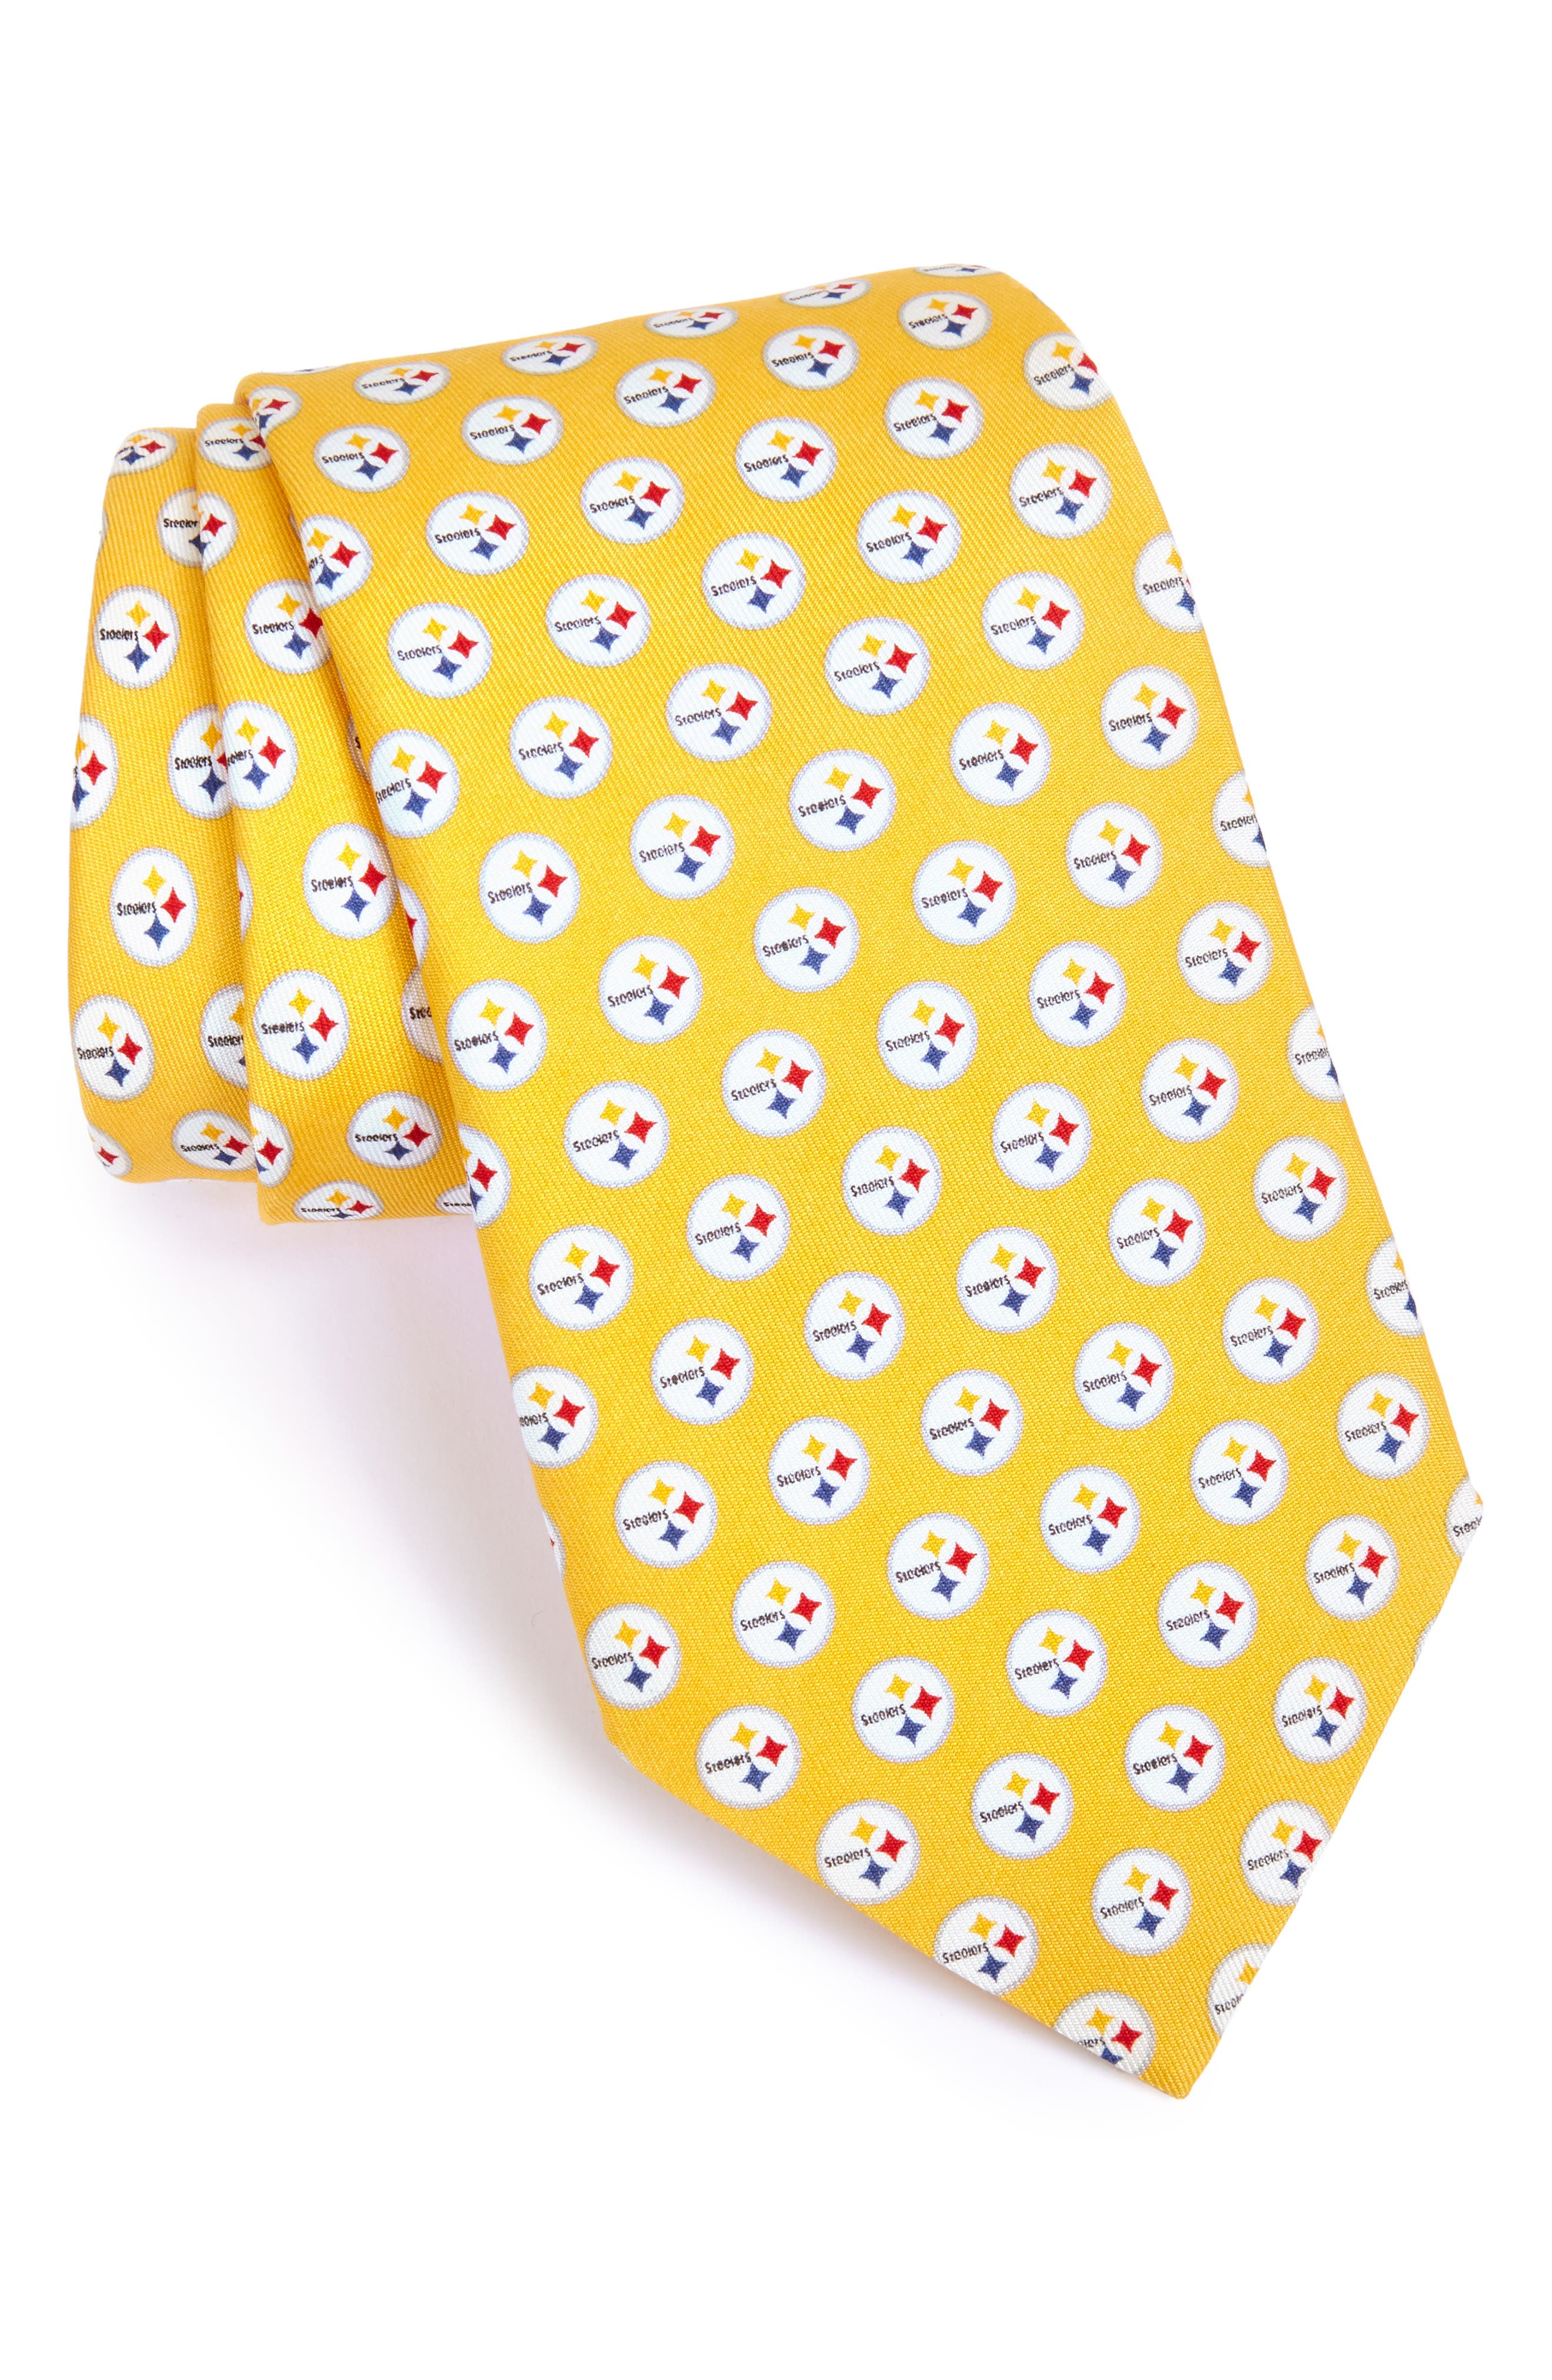 'Pittsburgh Steelers - NFL' Woven Silk Tie,                         Main,                         color, 720